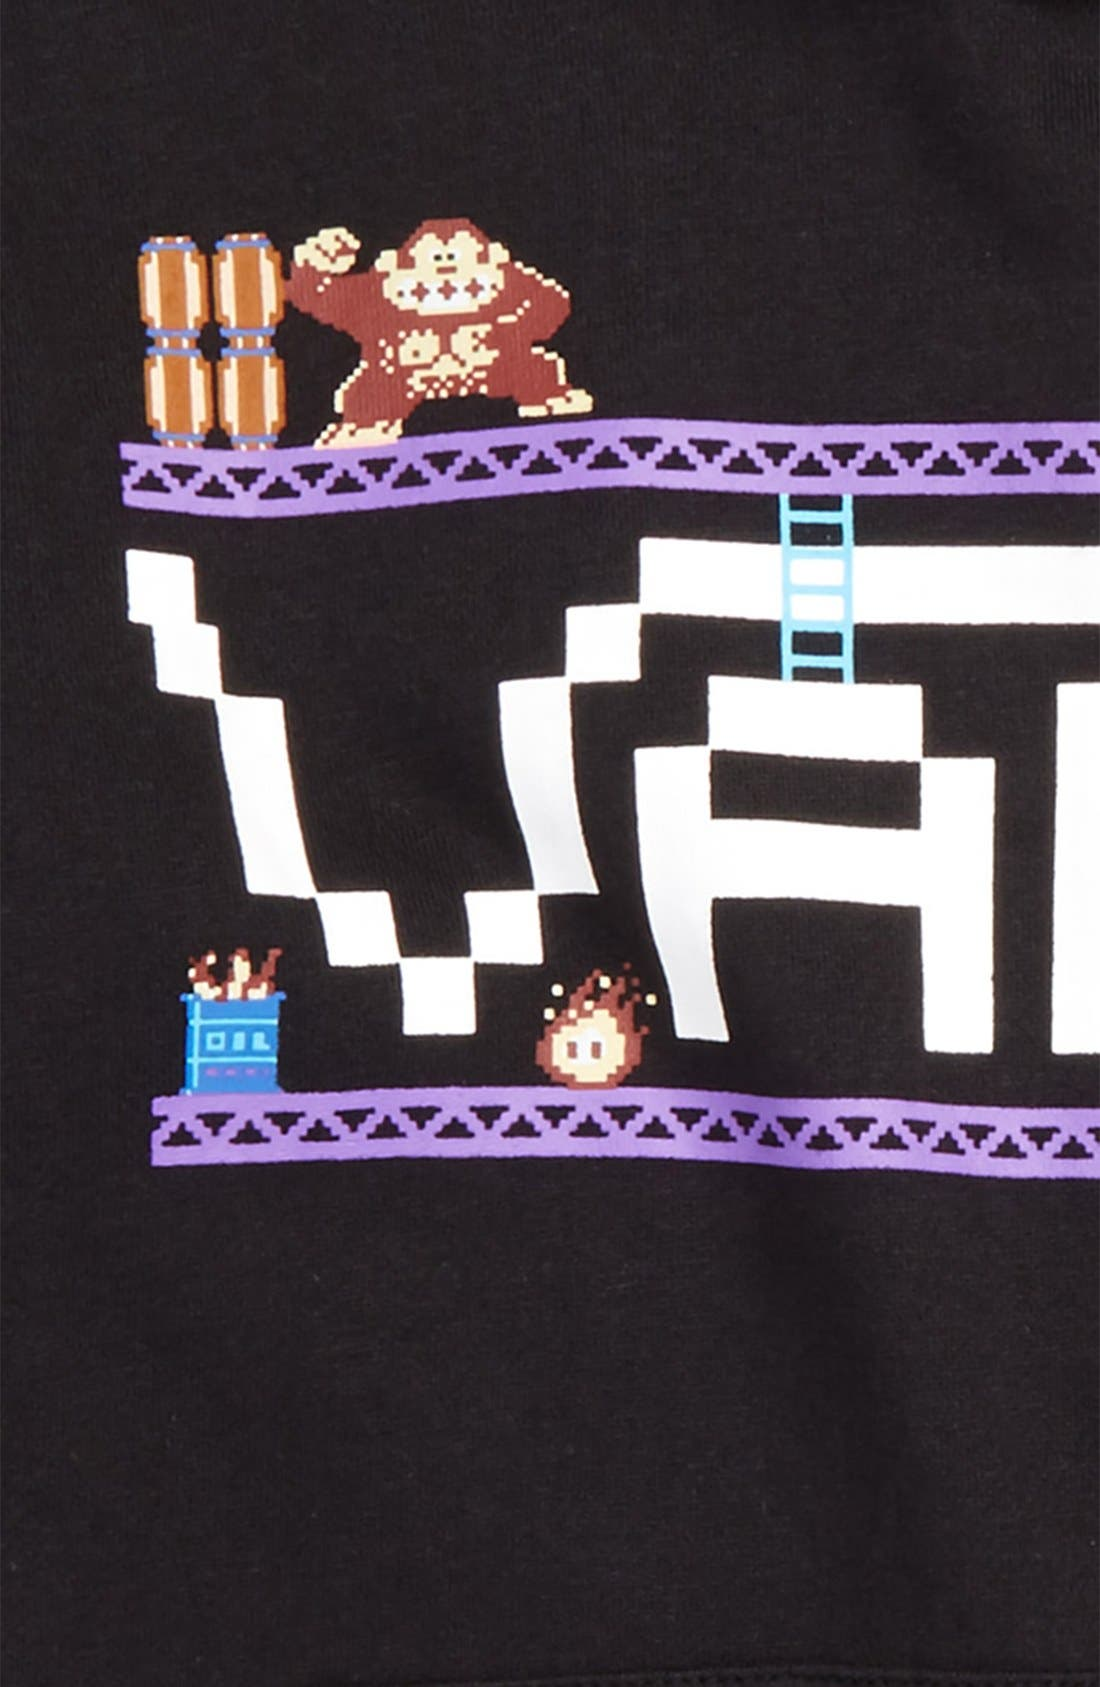 'Nintendo - Donkey Kong' Graphic Hoodie,                             Alternate thumbnail 2, color,                             001